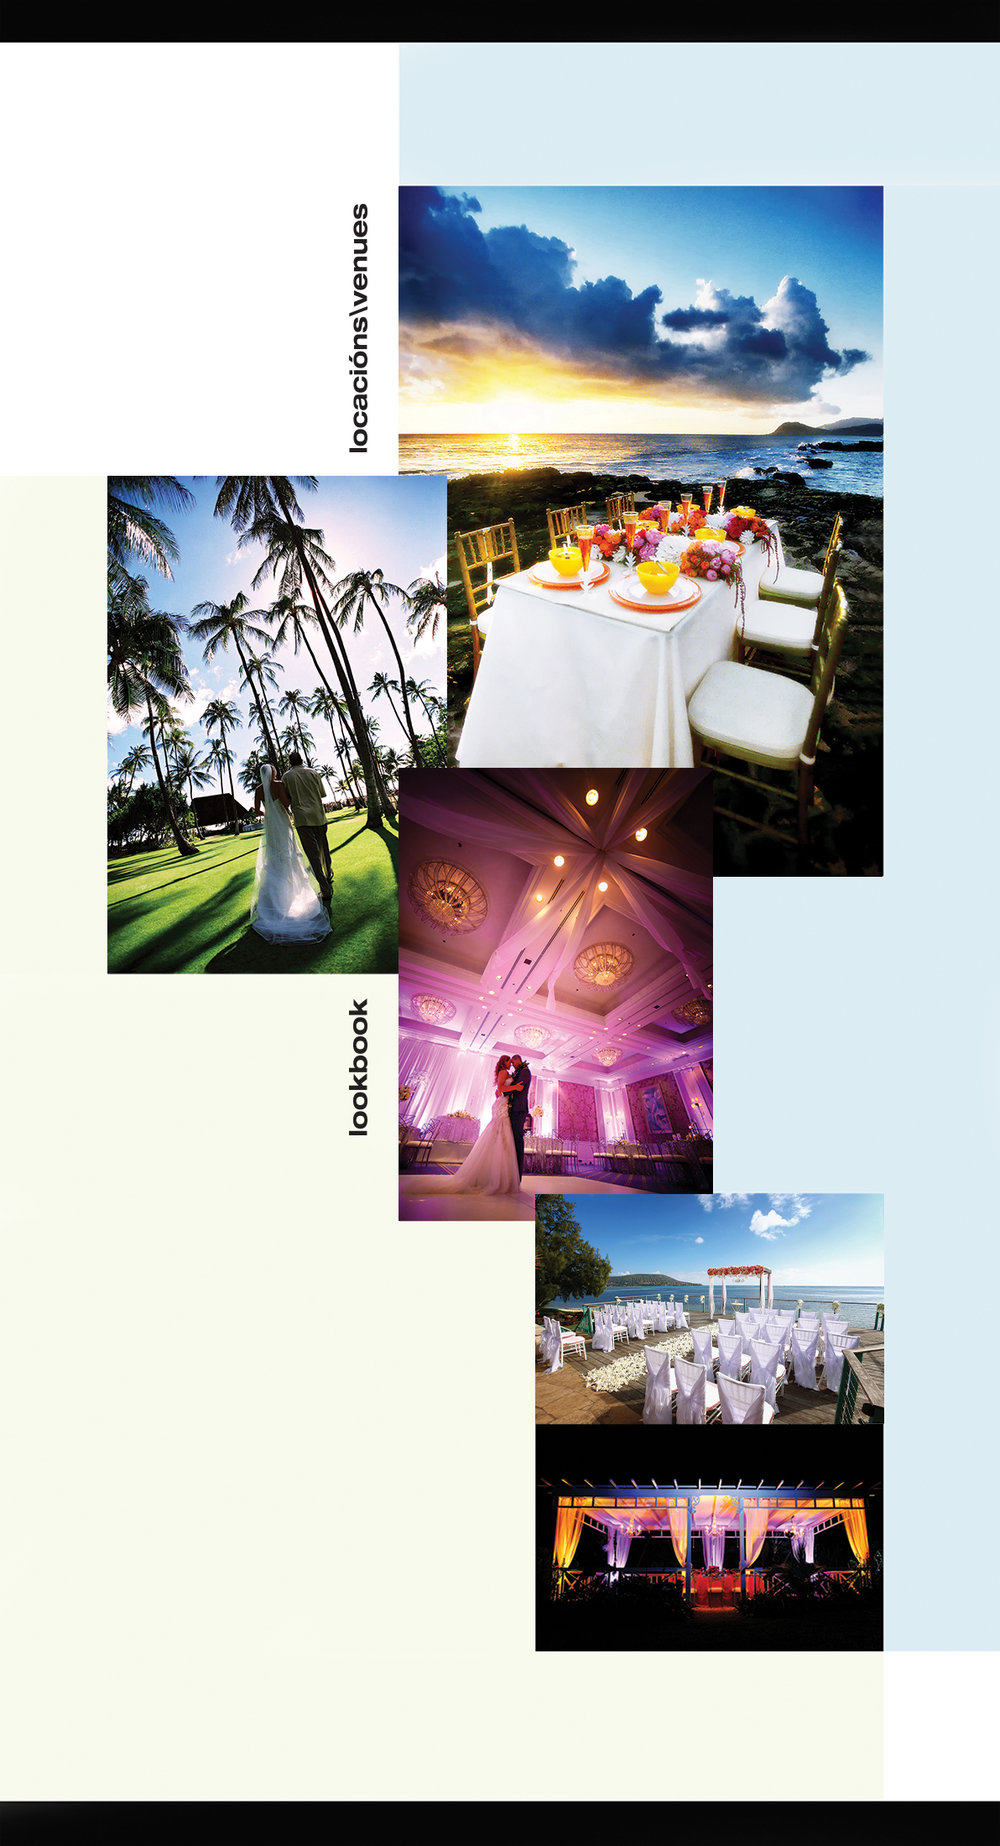 Lookbook_Venues 1.9.jpg